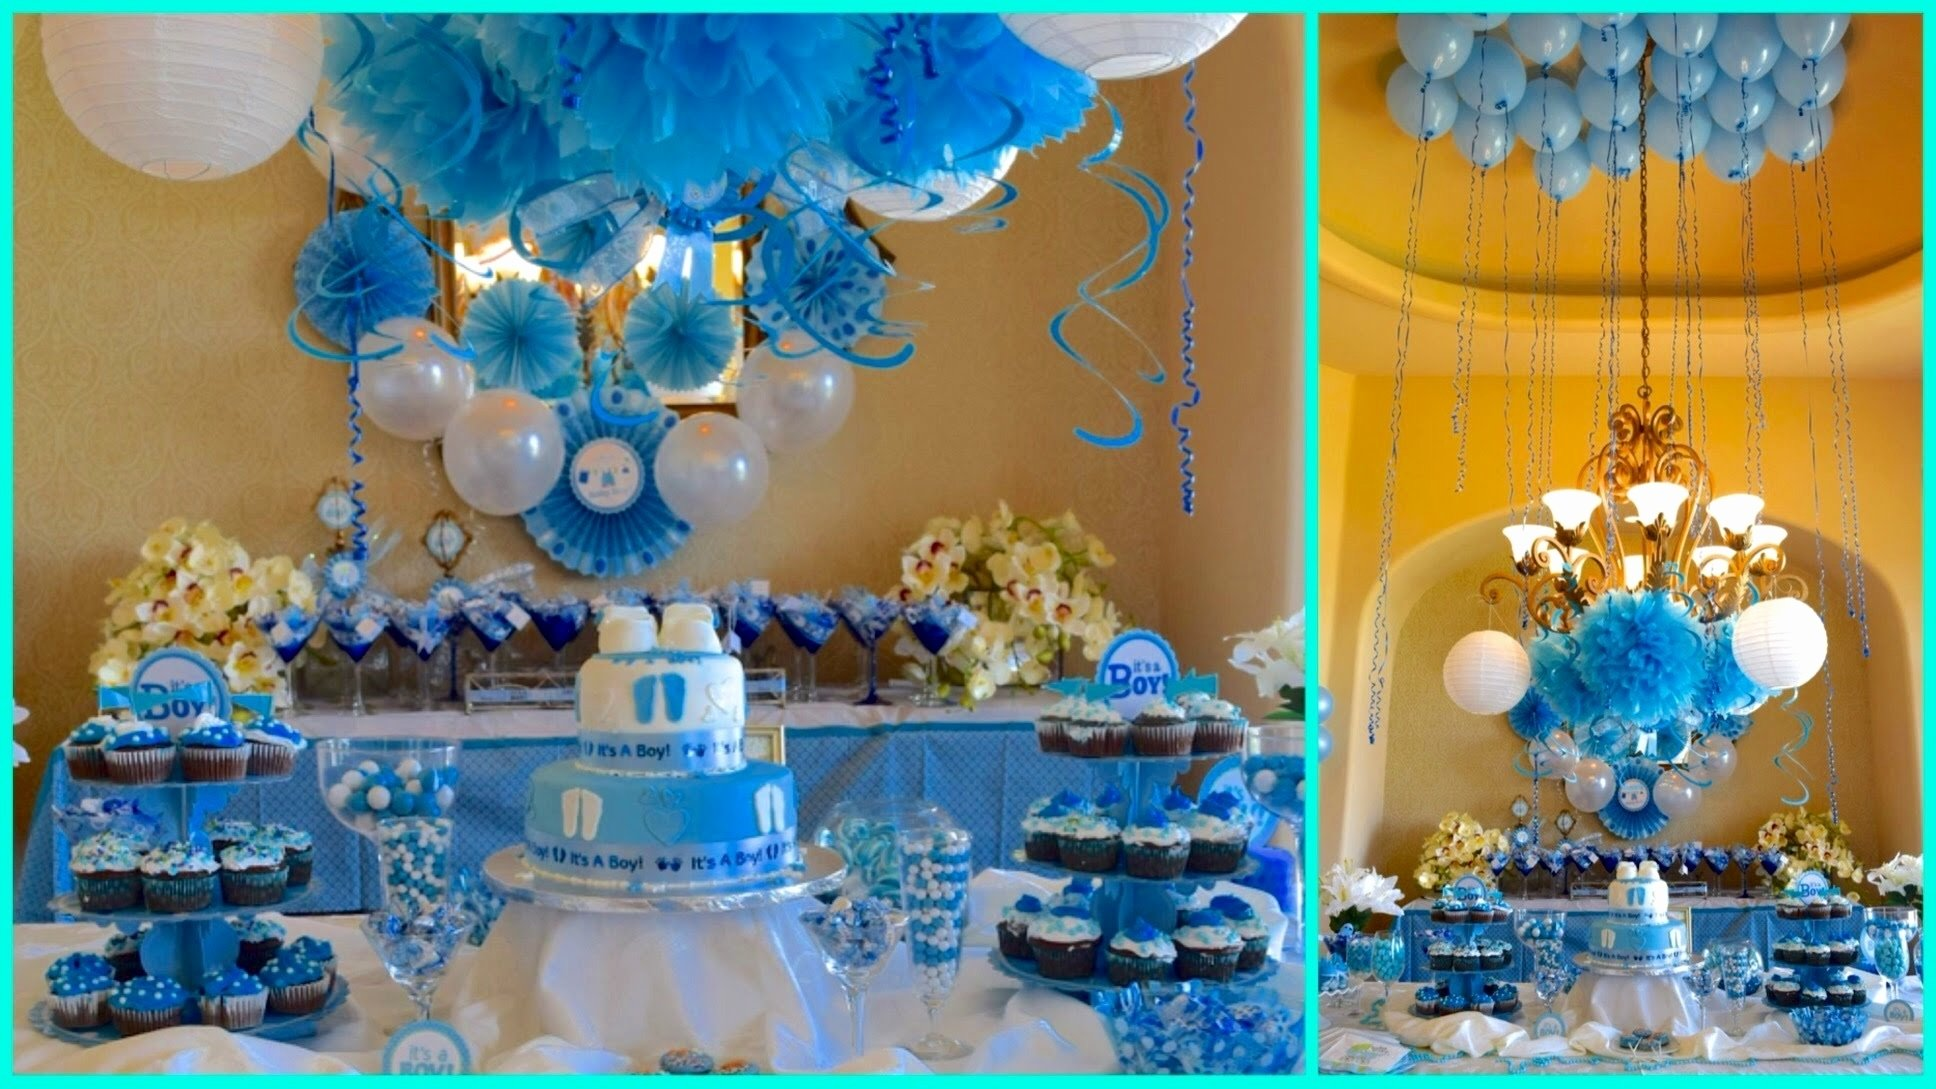 10 Elegant Baby Shower Decoration Ideas For Boys baby shower decoration ideas for a boy encouraging bedroom prince